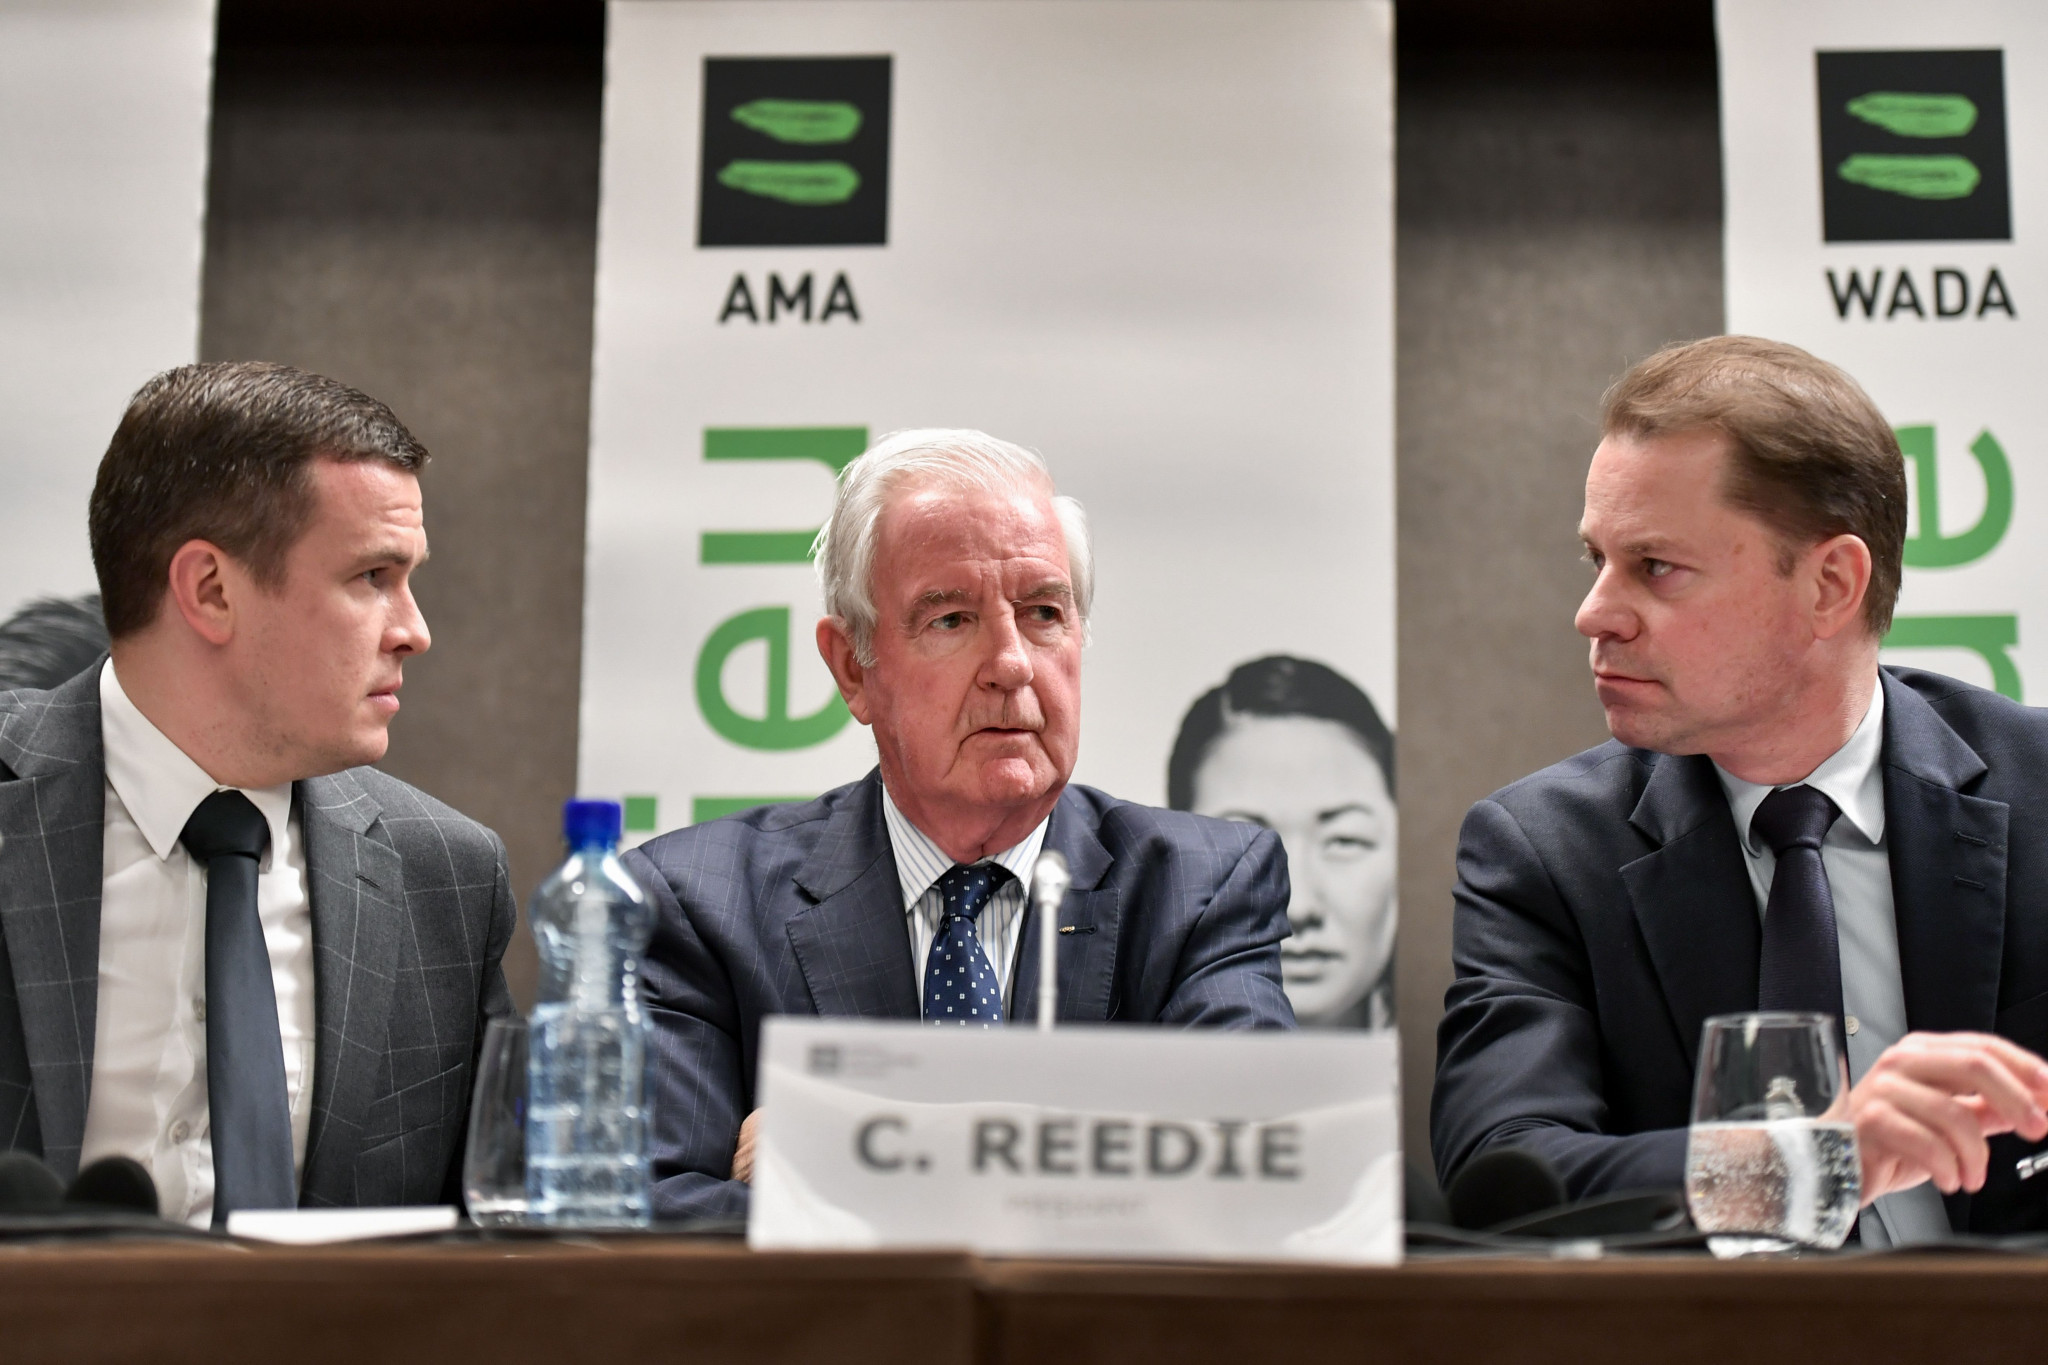 WADA's Executive Committee voted to impose a four-year ban on Russia earlier this week ©Getty Images